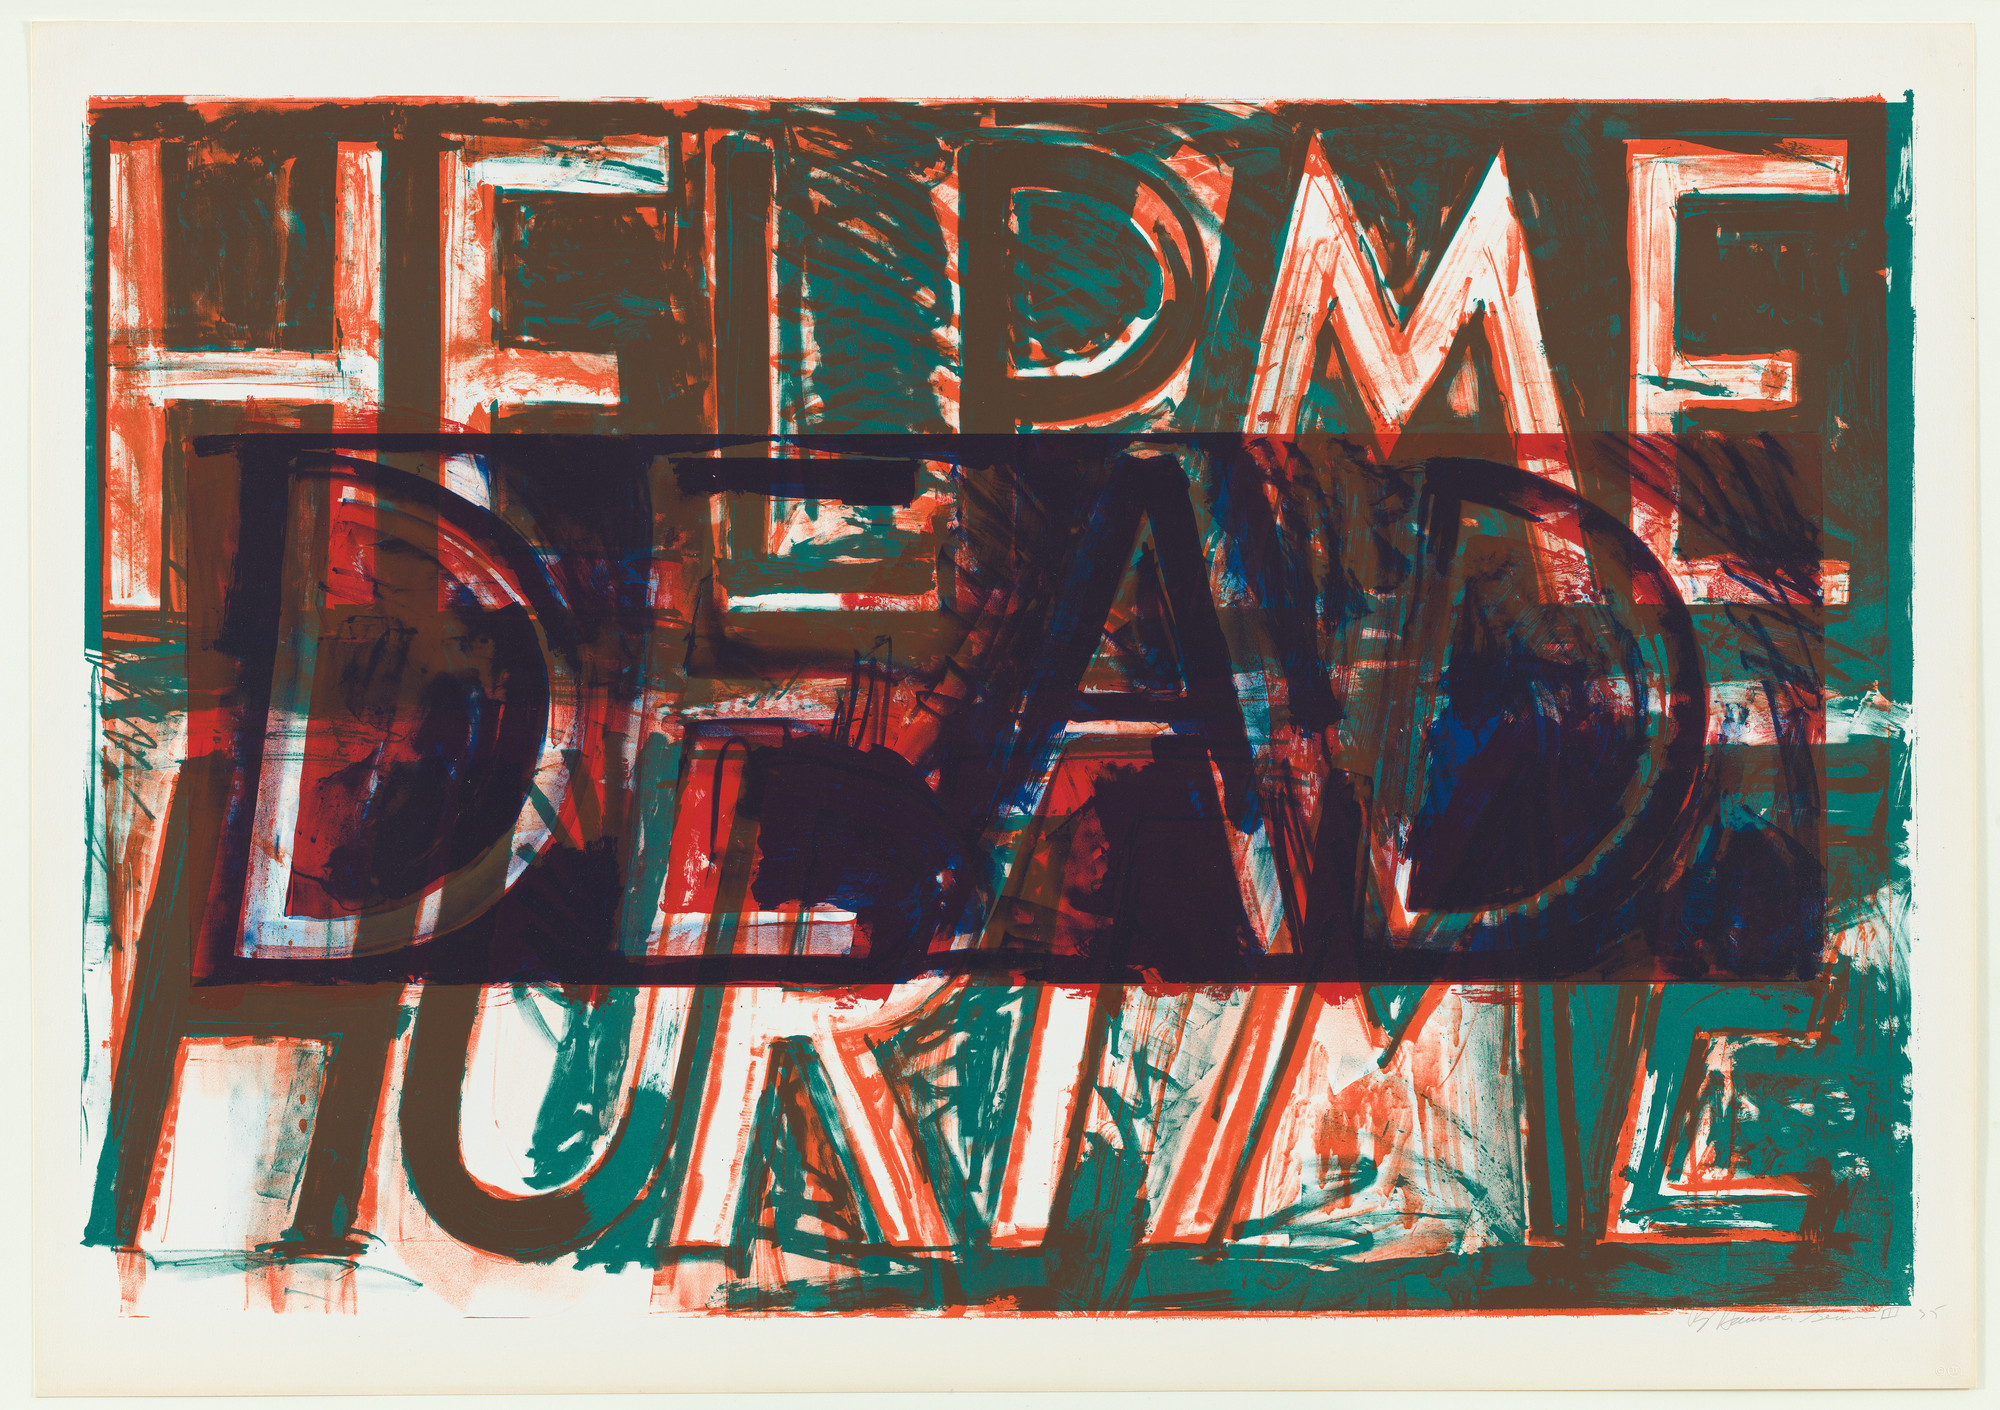 "Bruce Nauman. Help Me Hurt Me. 1975. Lithograph. 32 3/8 x 48 1/4"" (82.2 x 122.5 cm). Jeanne C. Thayer Fund. © 2018 Bruce Nauman / Artists Rights Society (ARS), New York. Photo: Thomas Griesel"